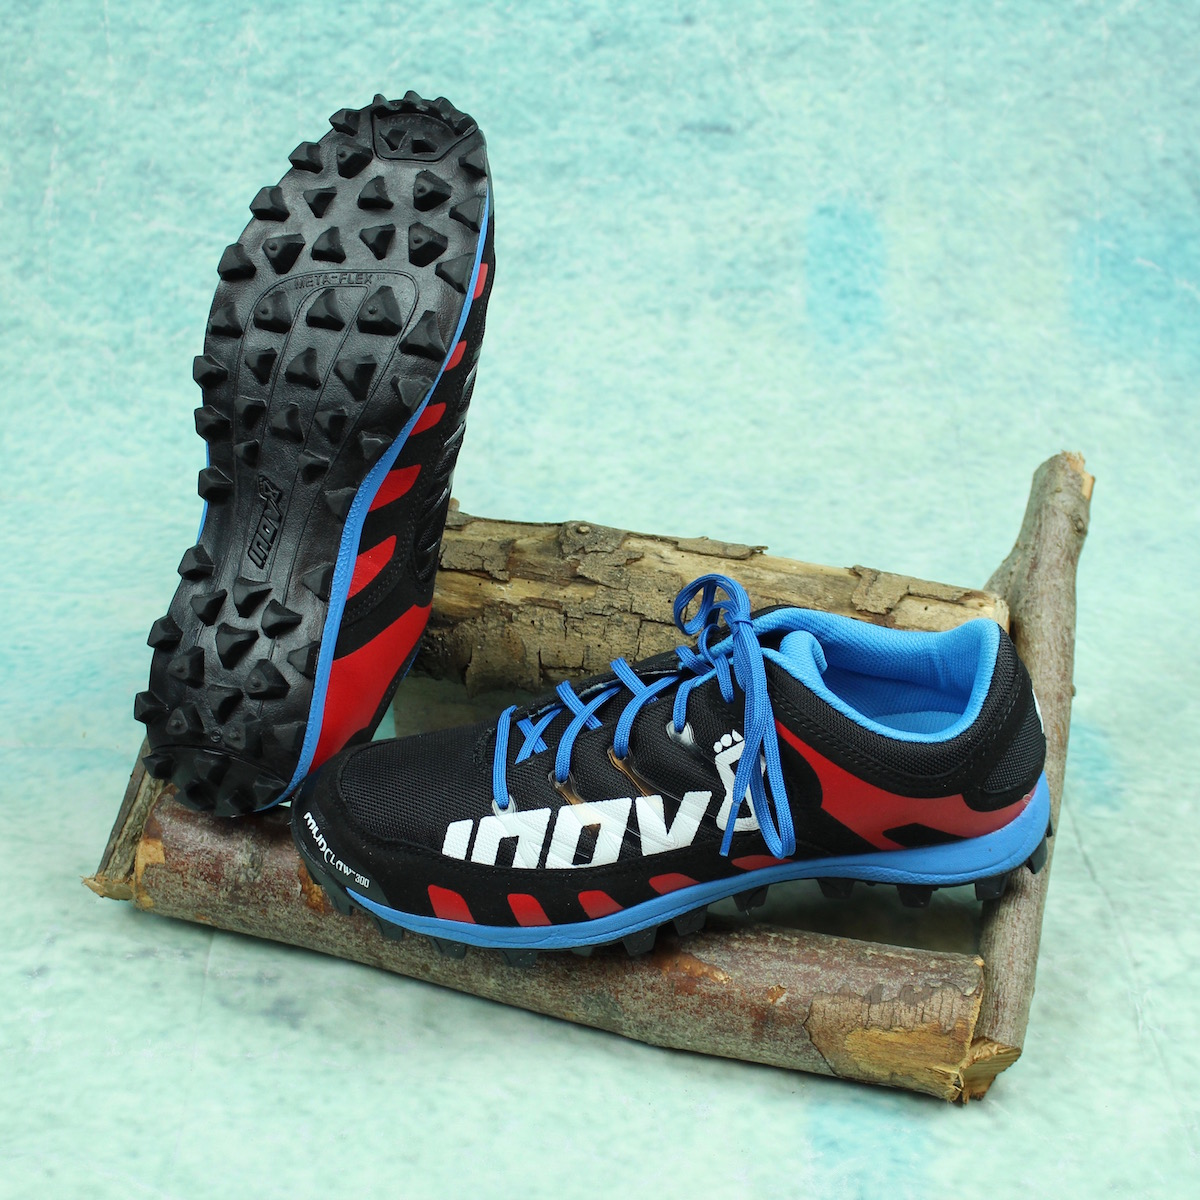 Orienteering Shoes Rubber studs